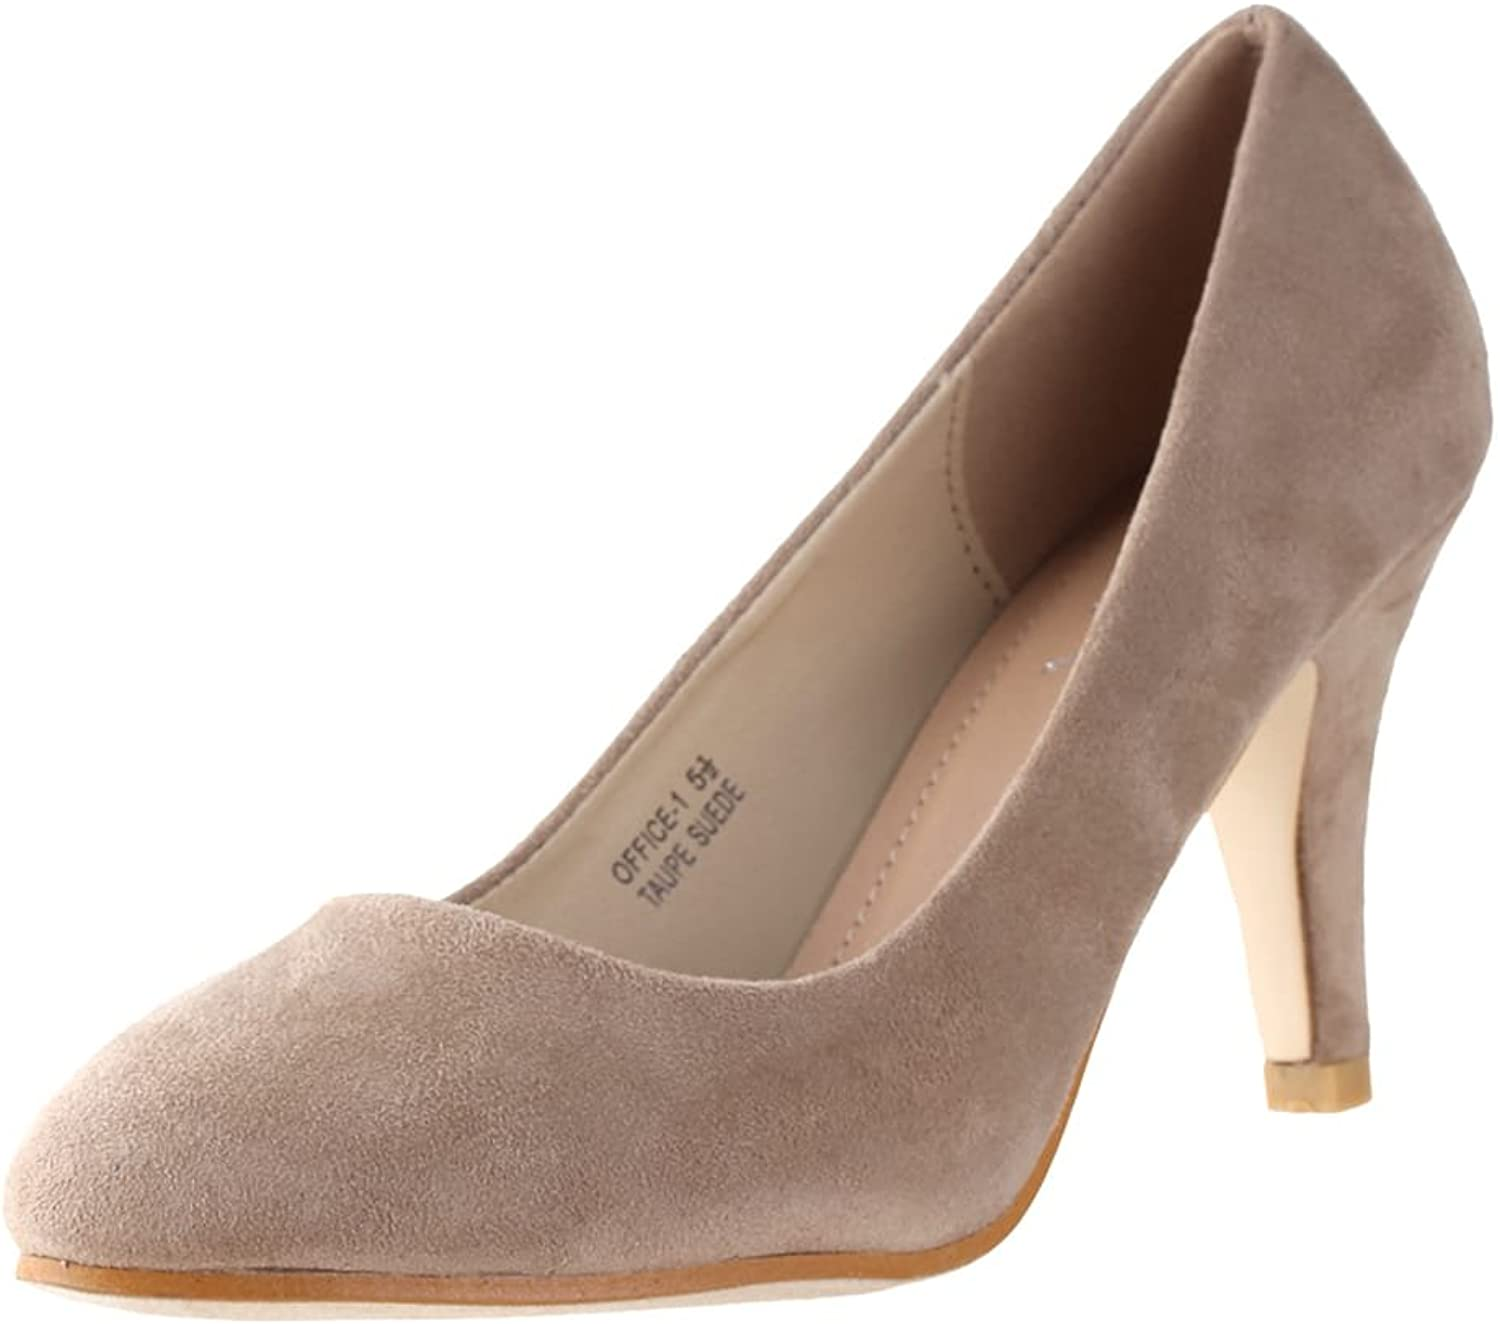 Anna shoes Womens Office-1 Suede Pumps Taupe